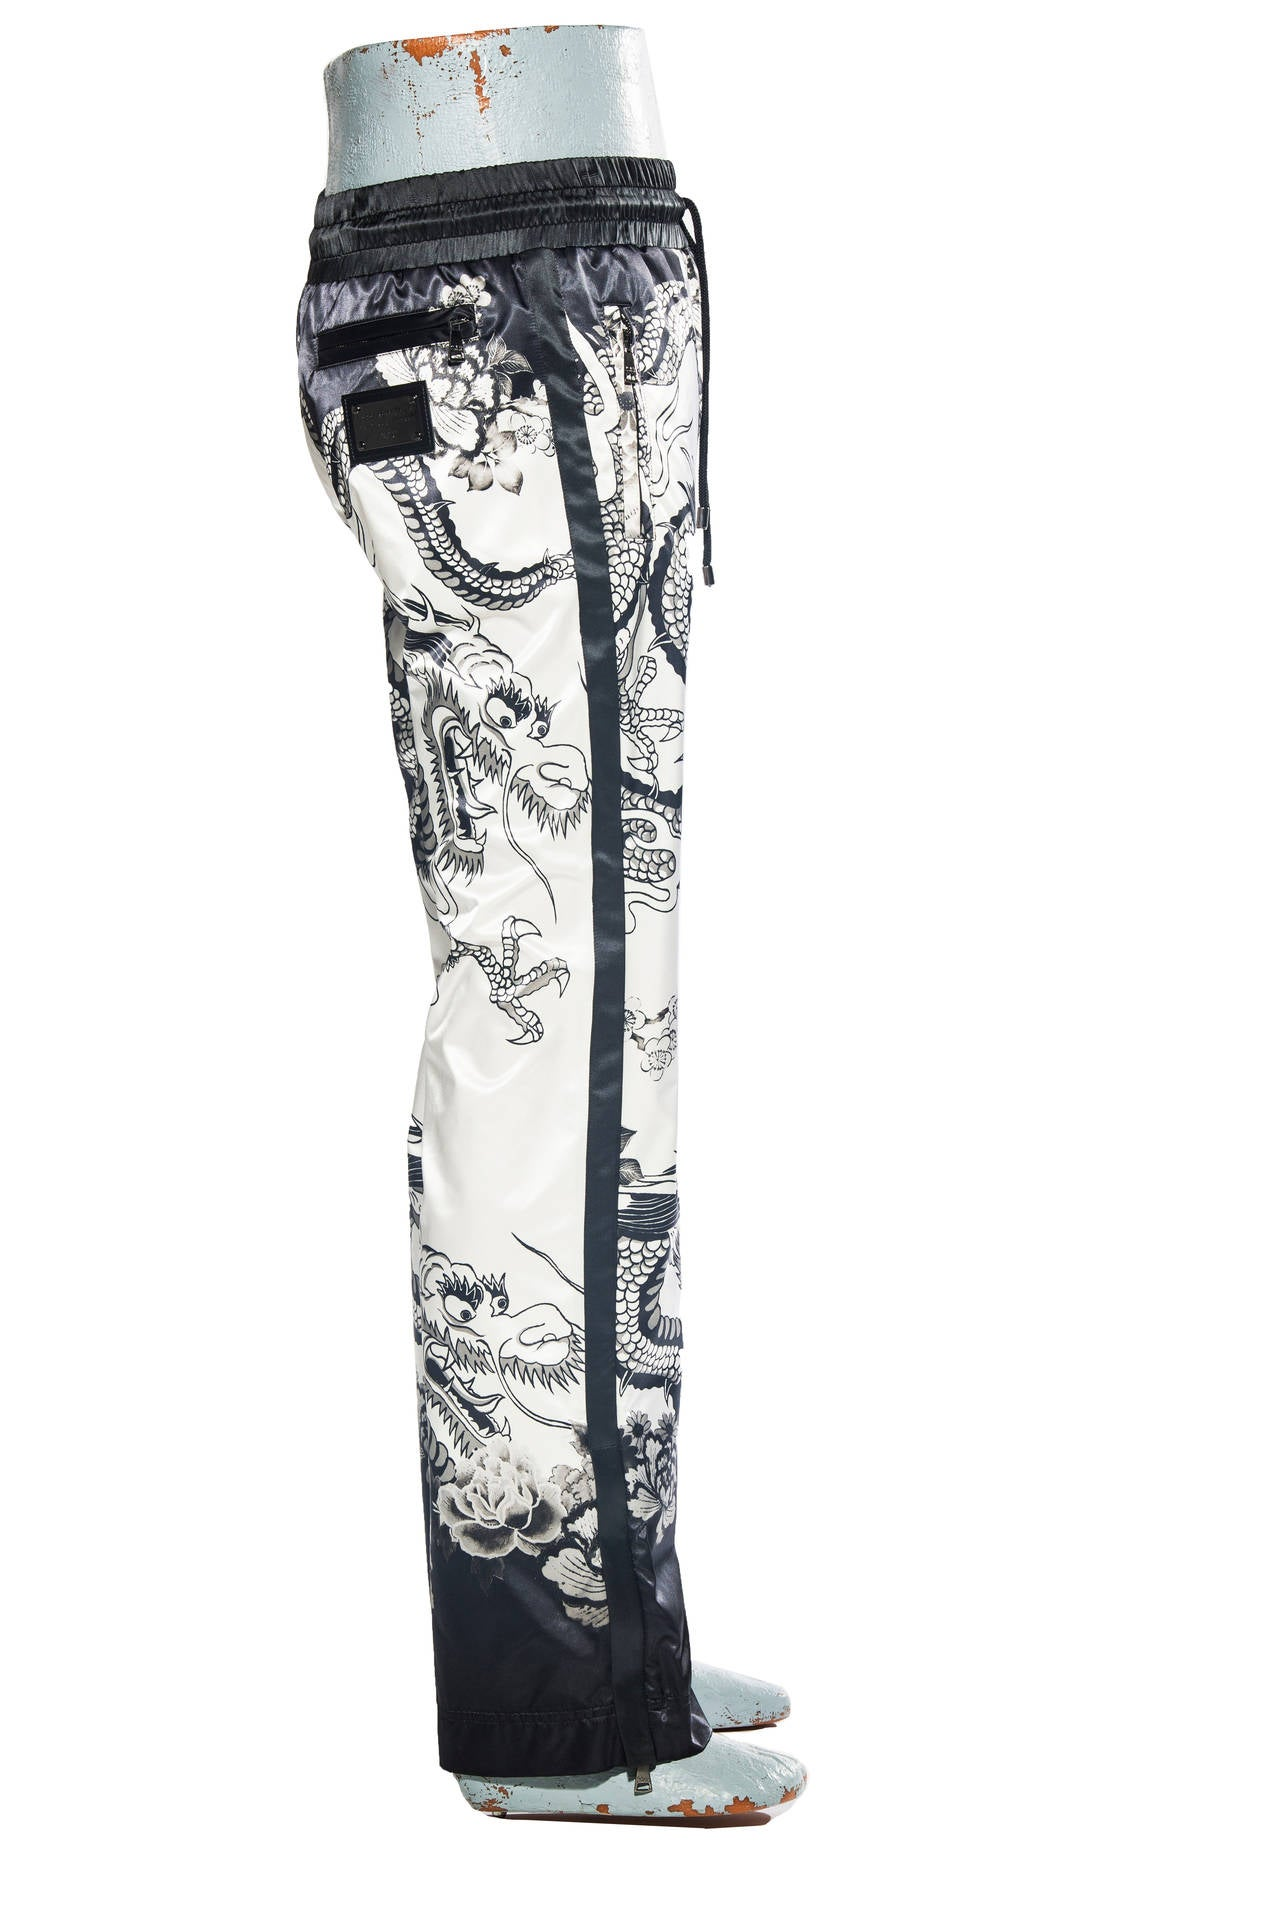 "Dolce and Gabbana, Spring-Summer 2009 printed satin pants with dragon motif, zippers at ankles, silver-tone logo plate at back, three zip pockets, drawstring waist and front fly closure.  Retail $1745  Waist 31"", Hip 38"", Rise 10.5"", Inseam 33"", Leg"